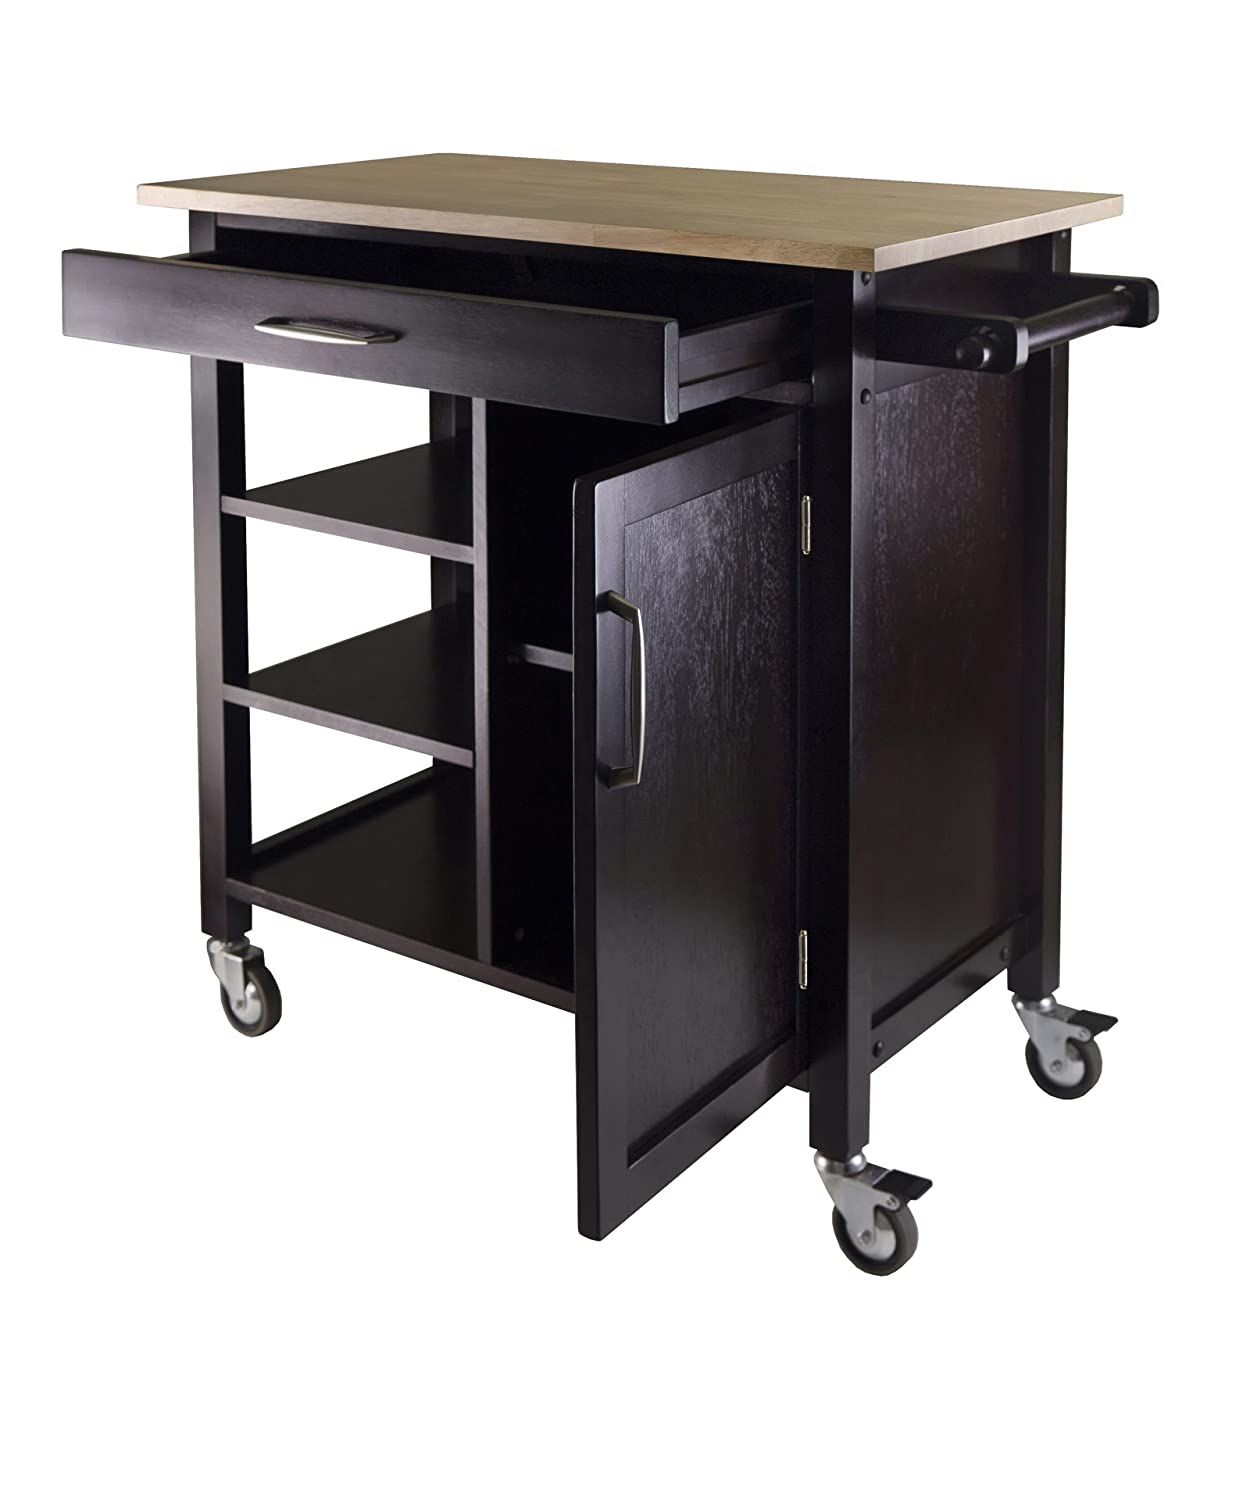 Compact Espresso Kitchen Cart With Wood Top